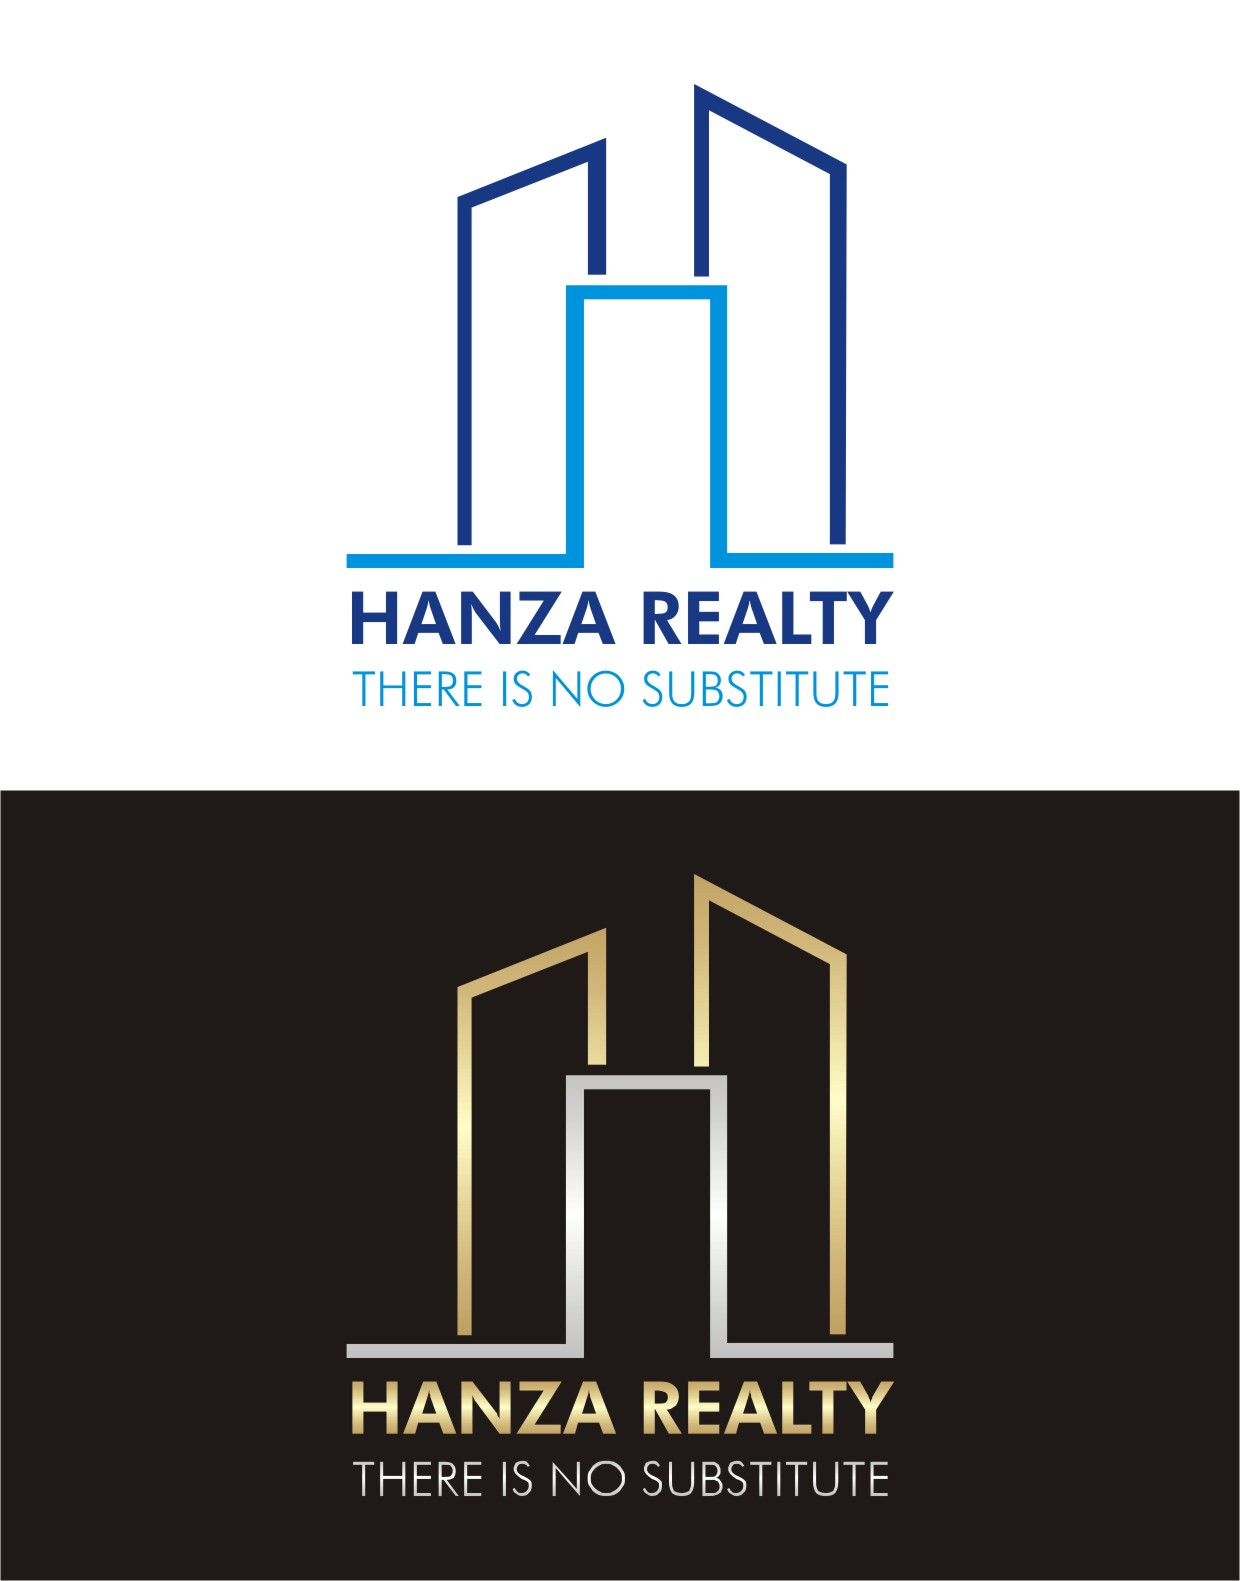 Logo Design by Lynx Graphics - Entry No. 415 in the Logo Design Contest Logo Design for Hanza Realty.